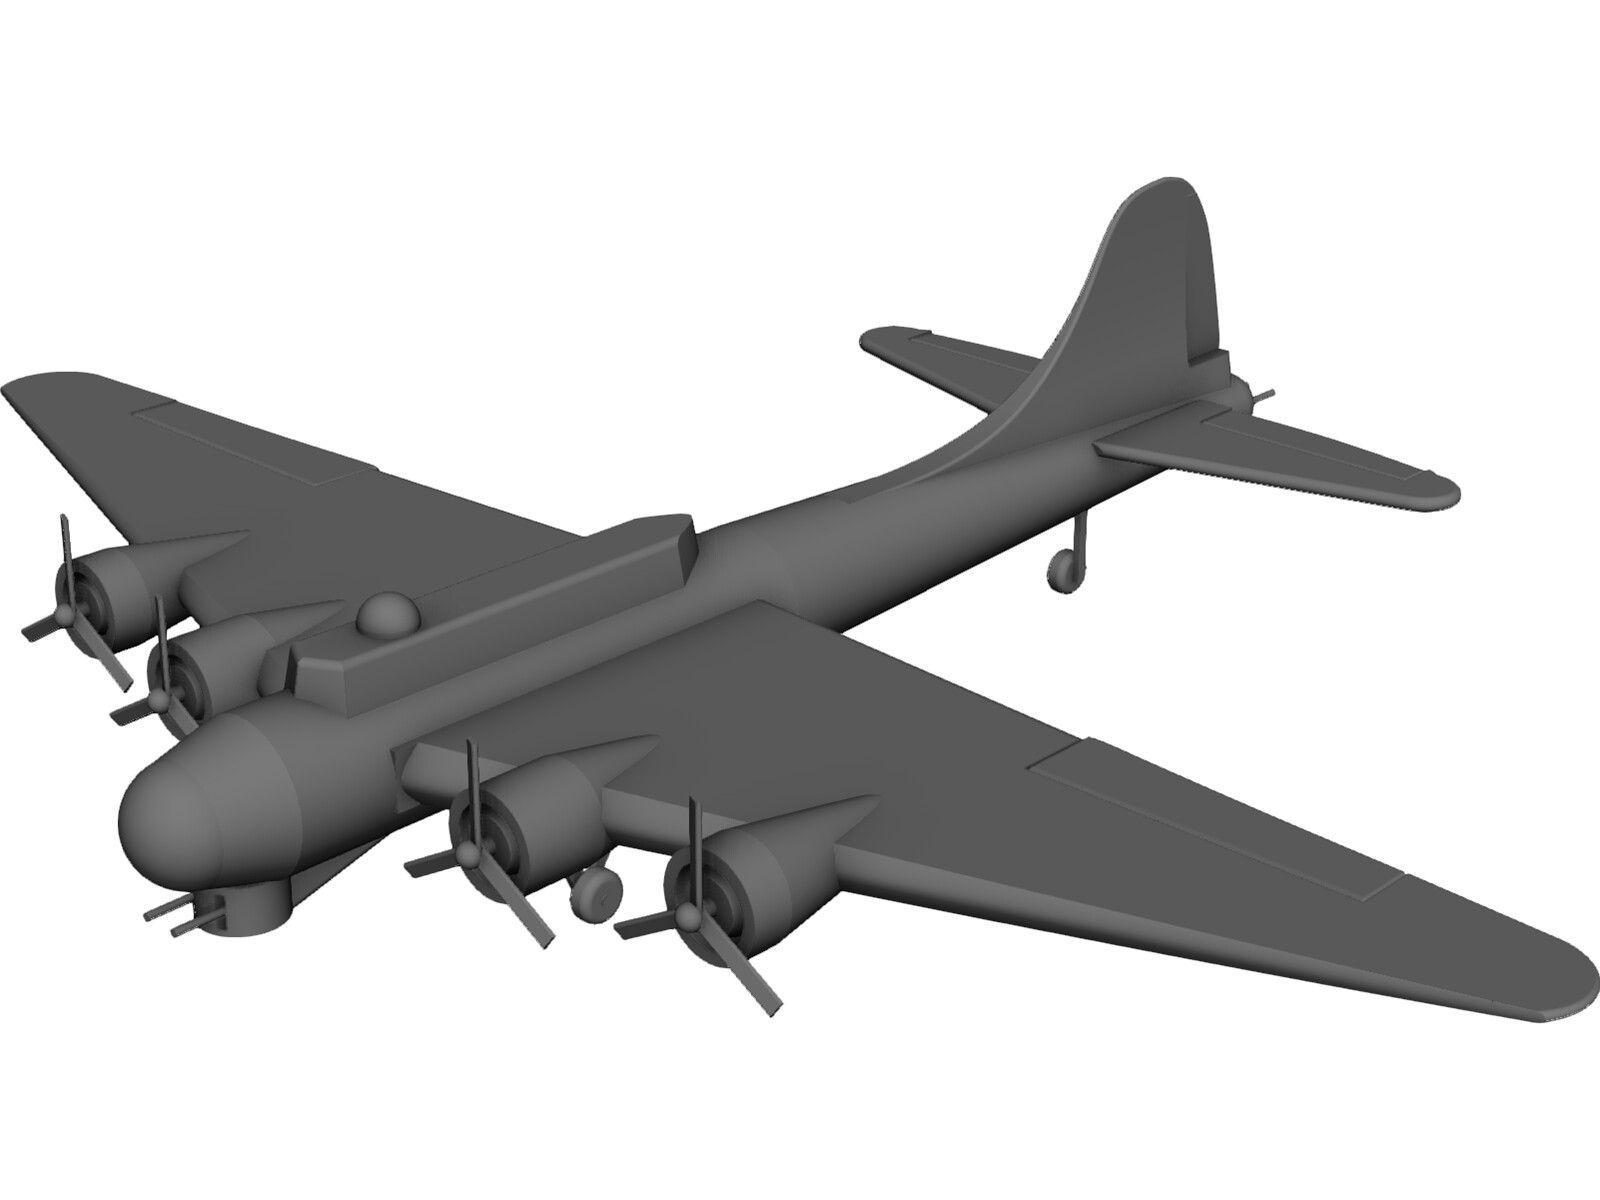 Boeing B-17 Flying Fortress 3D CAD Model